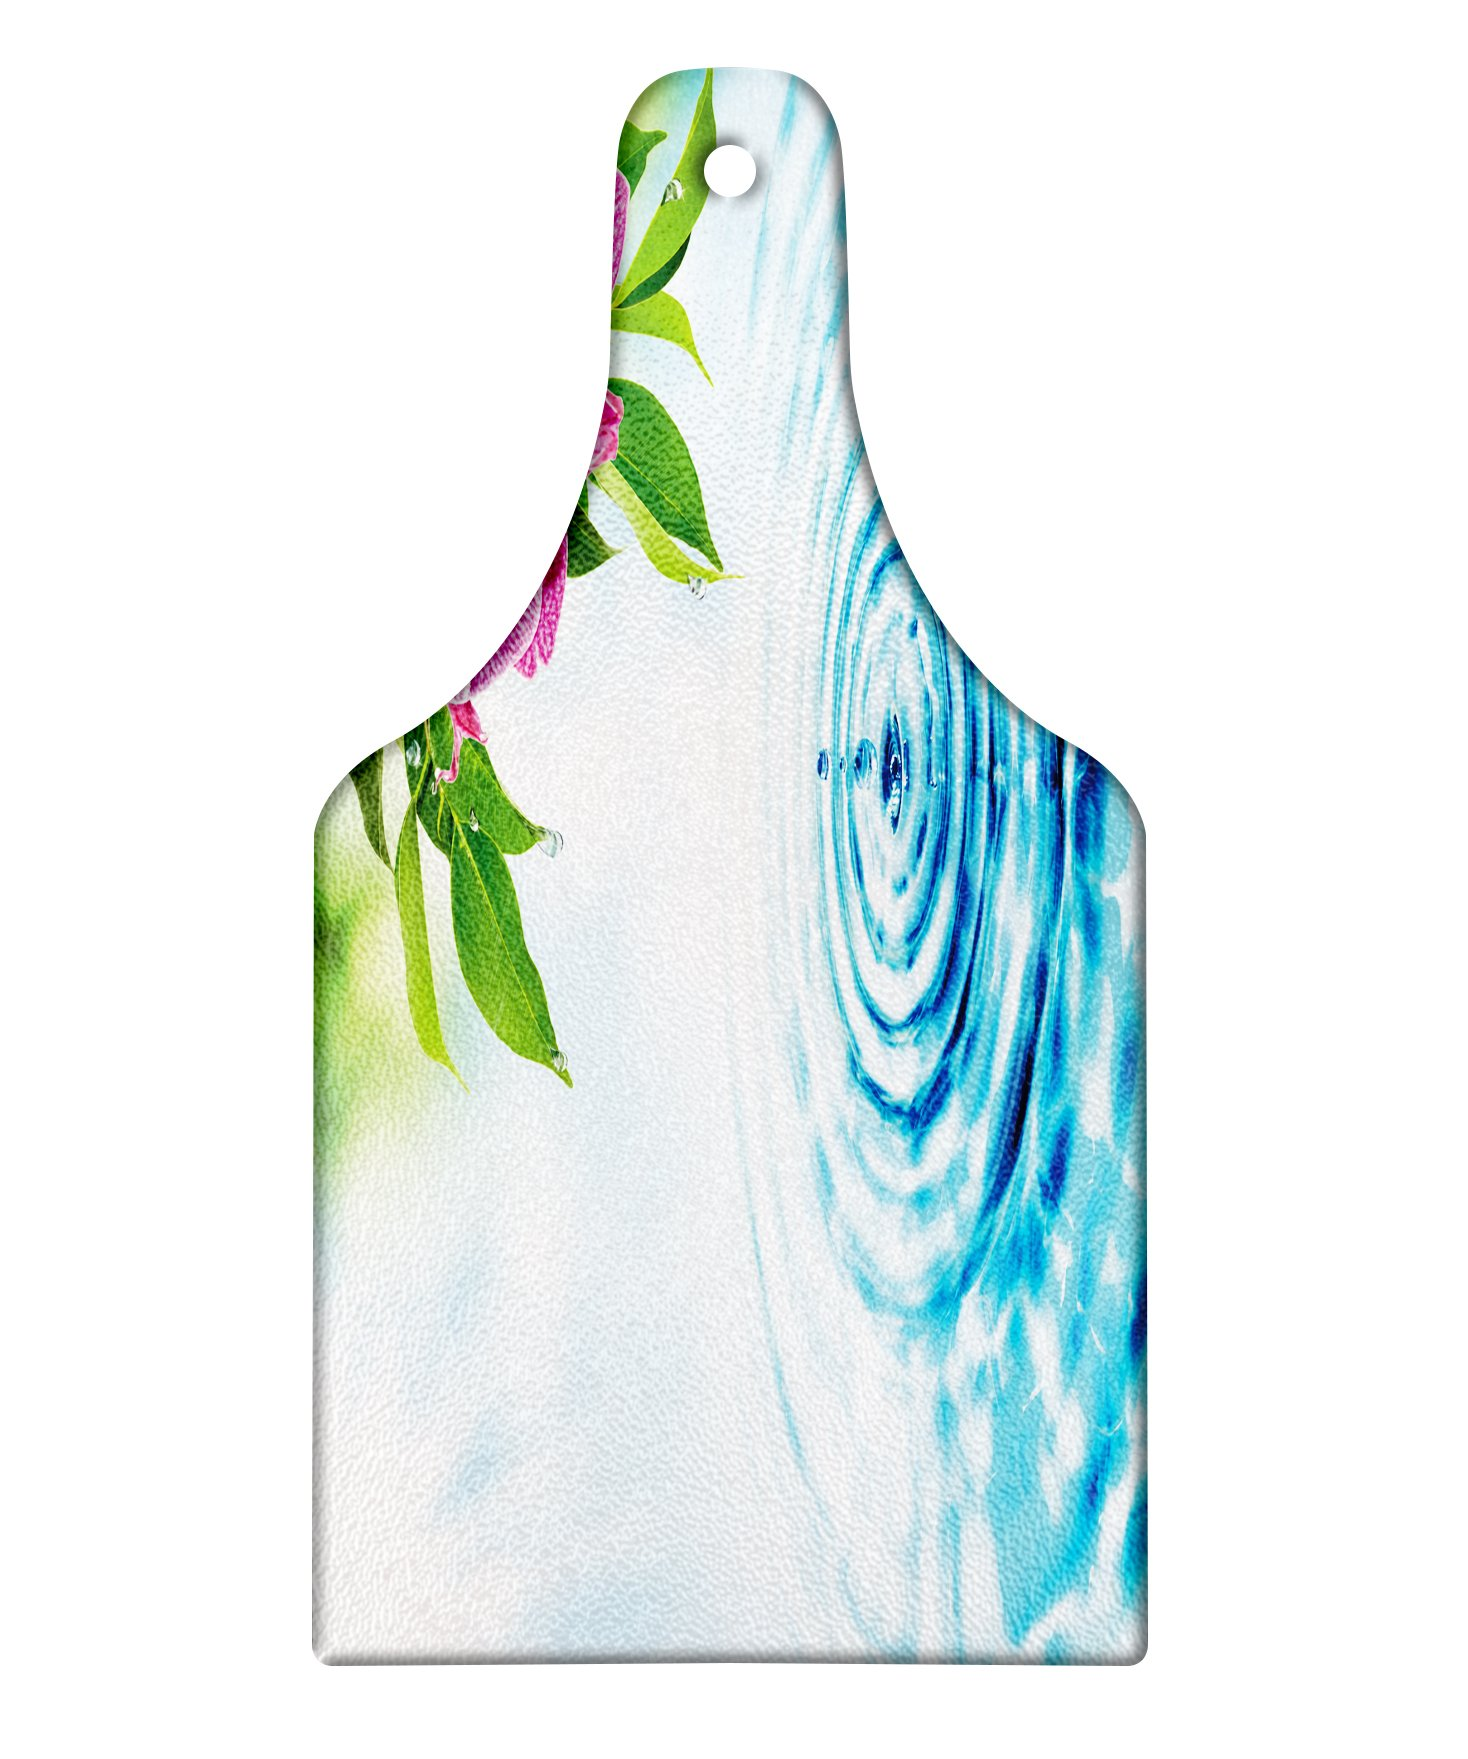 Lunarable Floral Cutting Board, Natural Inspired Relaxation Orchid Petals down on Water Spa Meditation Zen Concept, Decorative Tempered Glass Cutting and Serving Board, Wine Bottle Shape, Multicolor